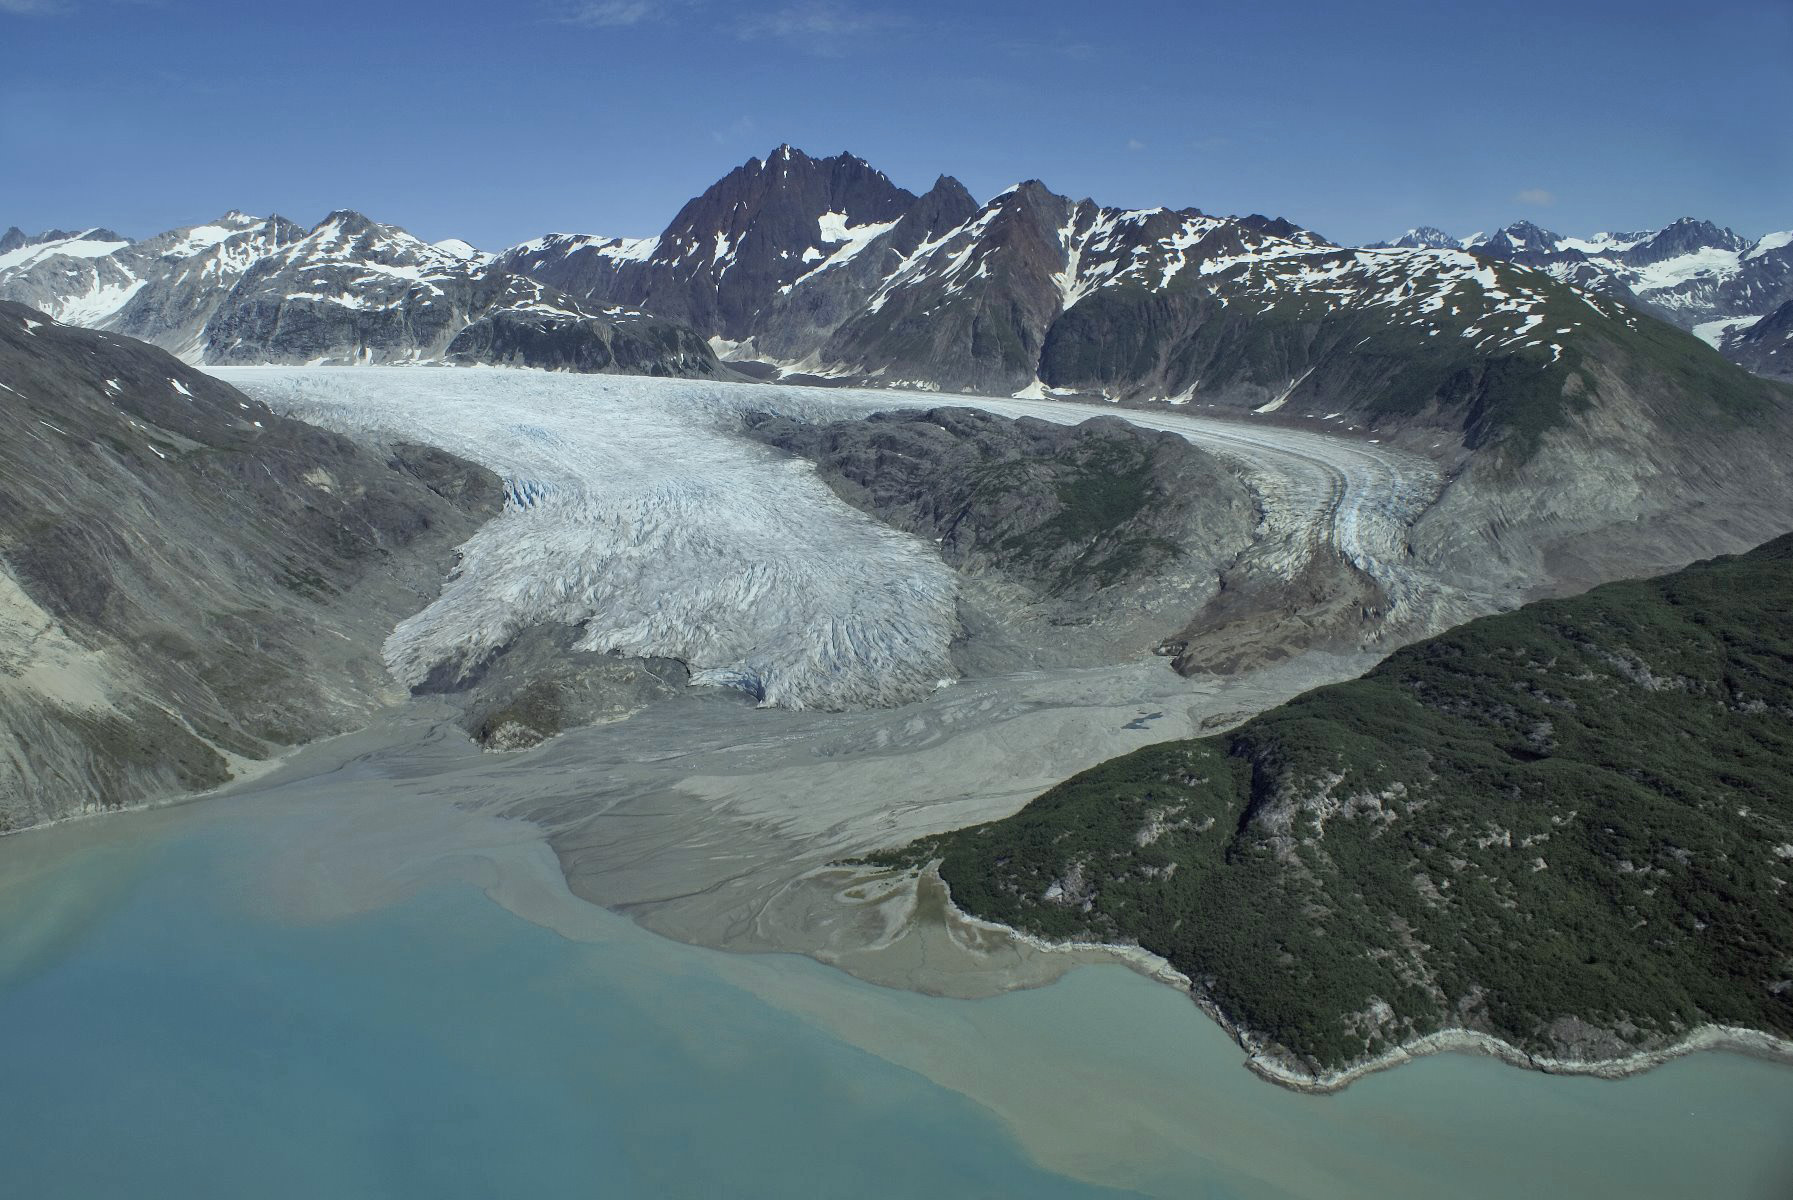 Riggs Glacier on July 19, 2007.